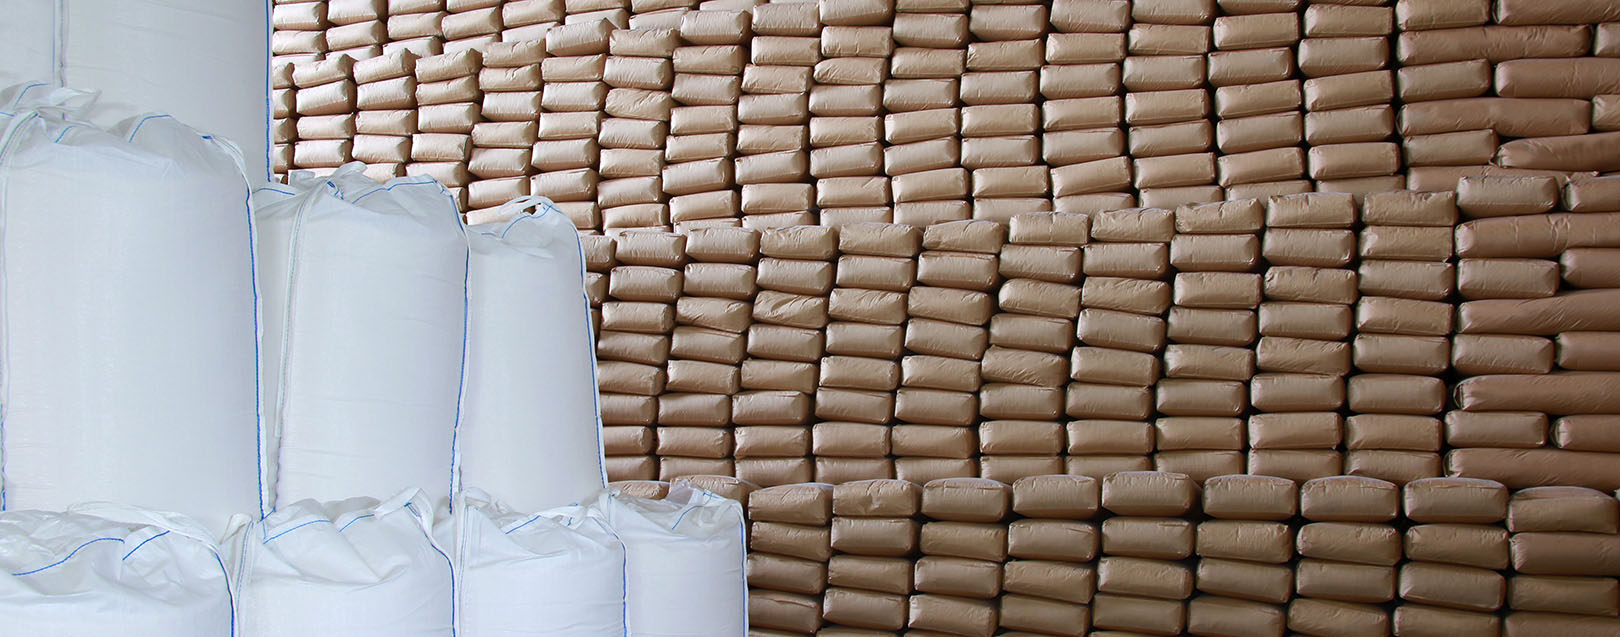 India may levy 25% customs duty on sugar exports